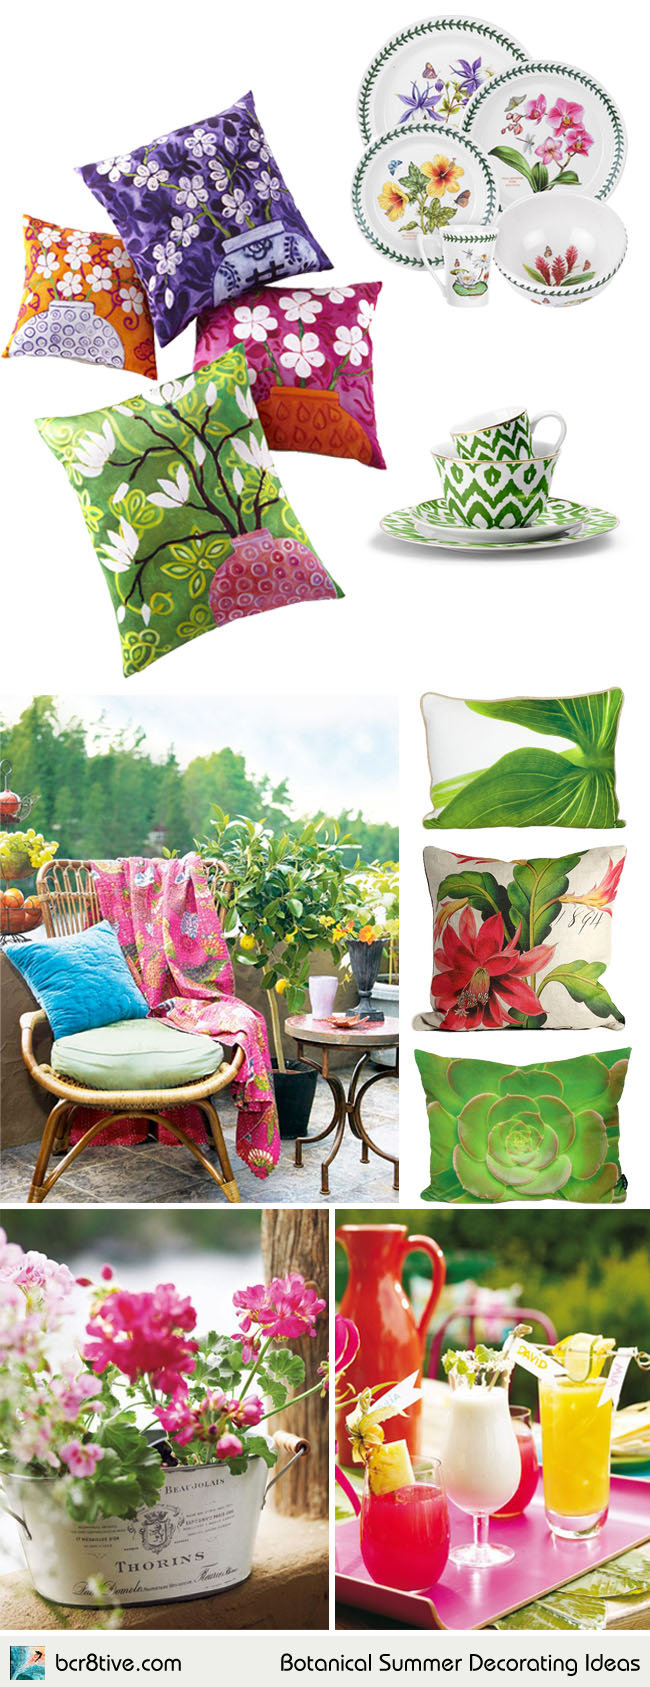 Botanical Summer Decorating Ideas